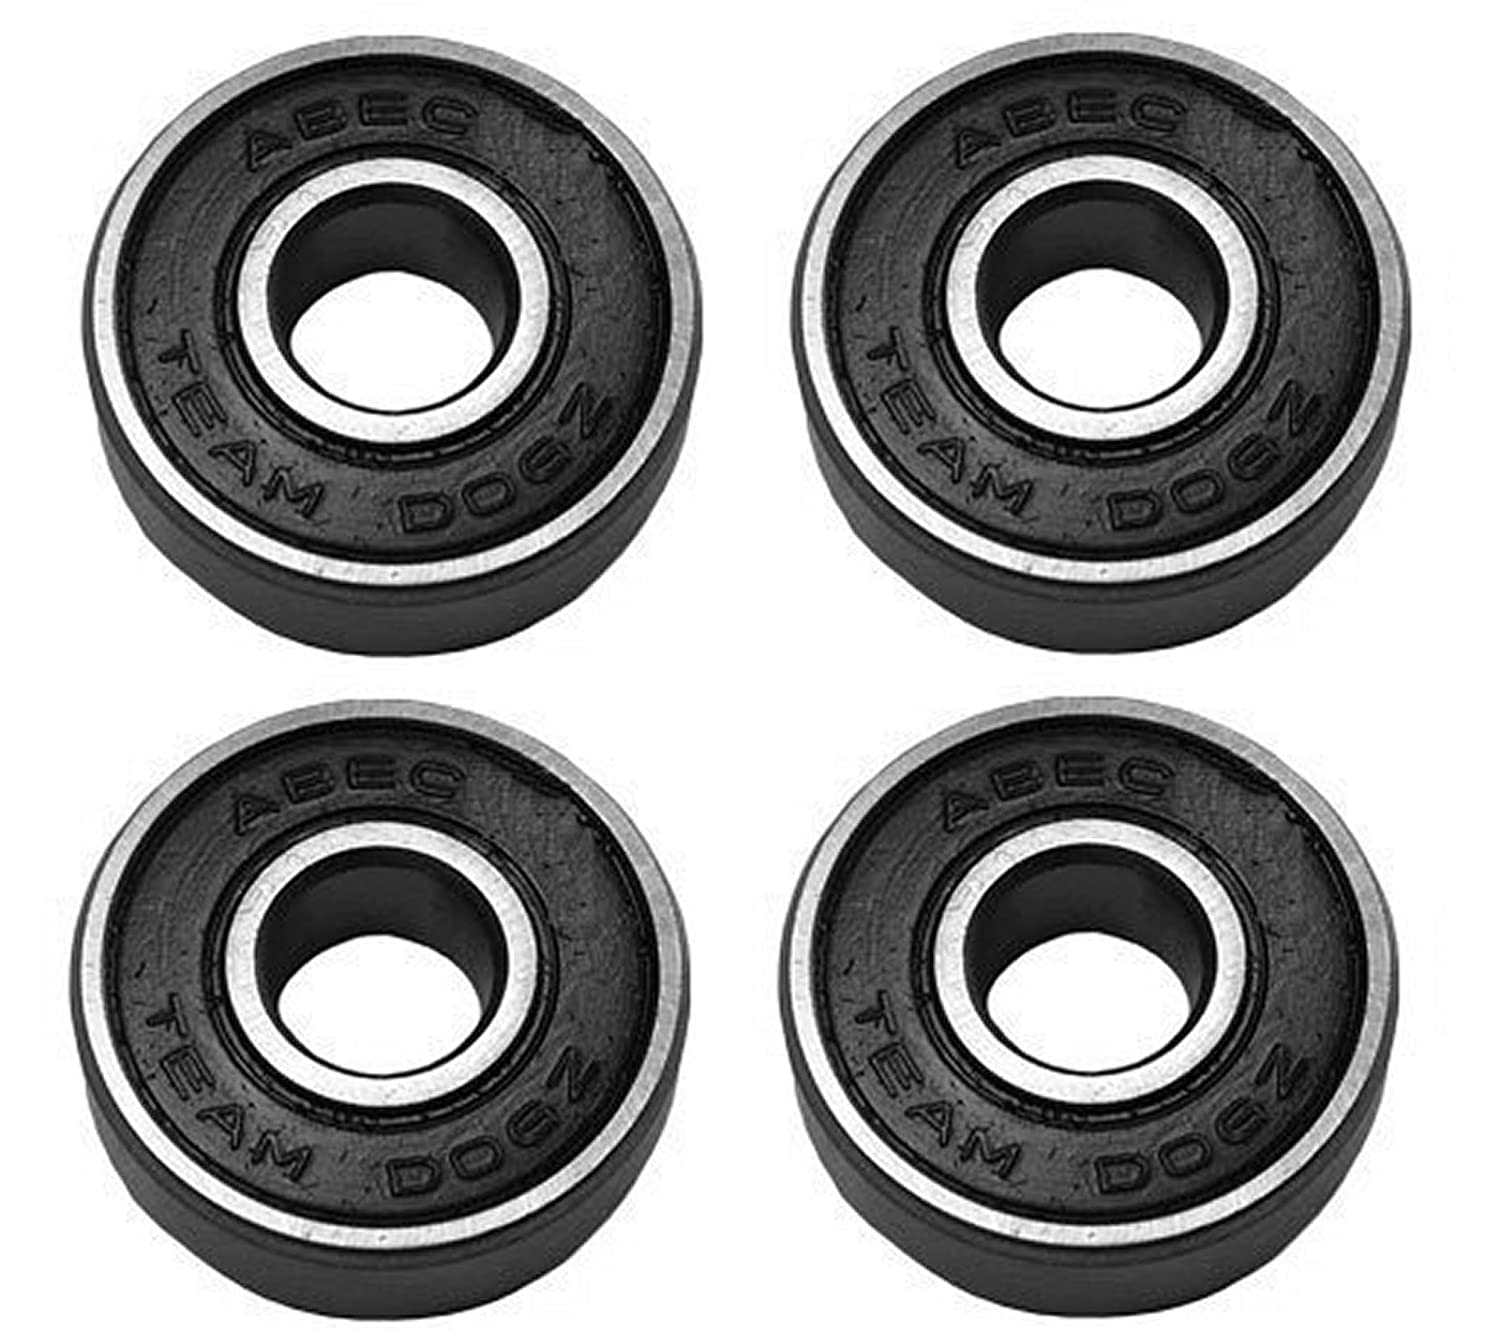 Team Dogz 608 ABEC 11 Wheel Bearings - Pack Of 4 - For Scooters and Skates